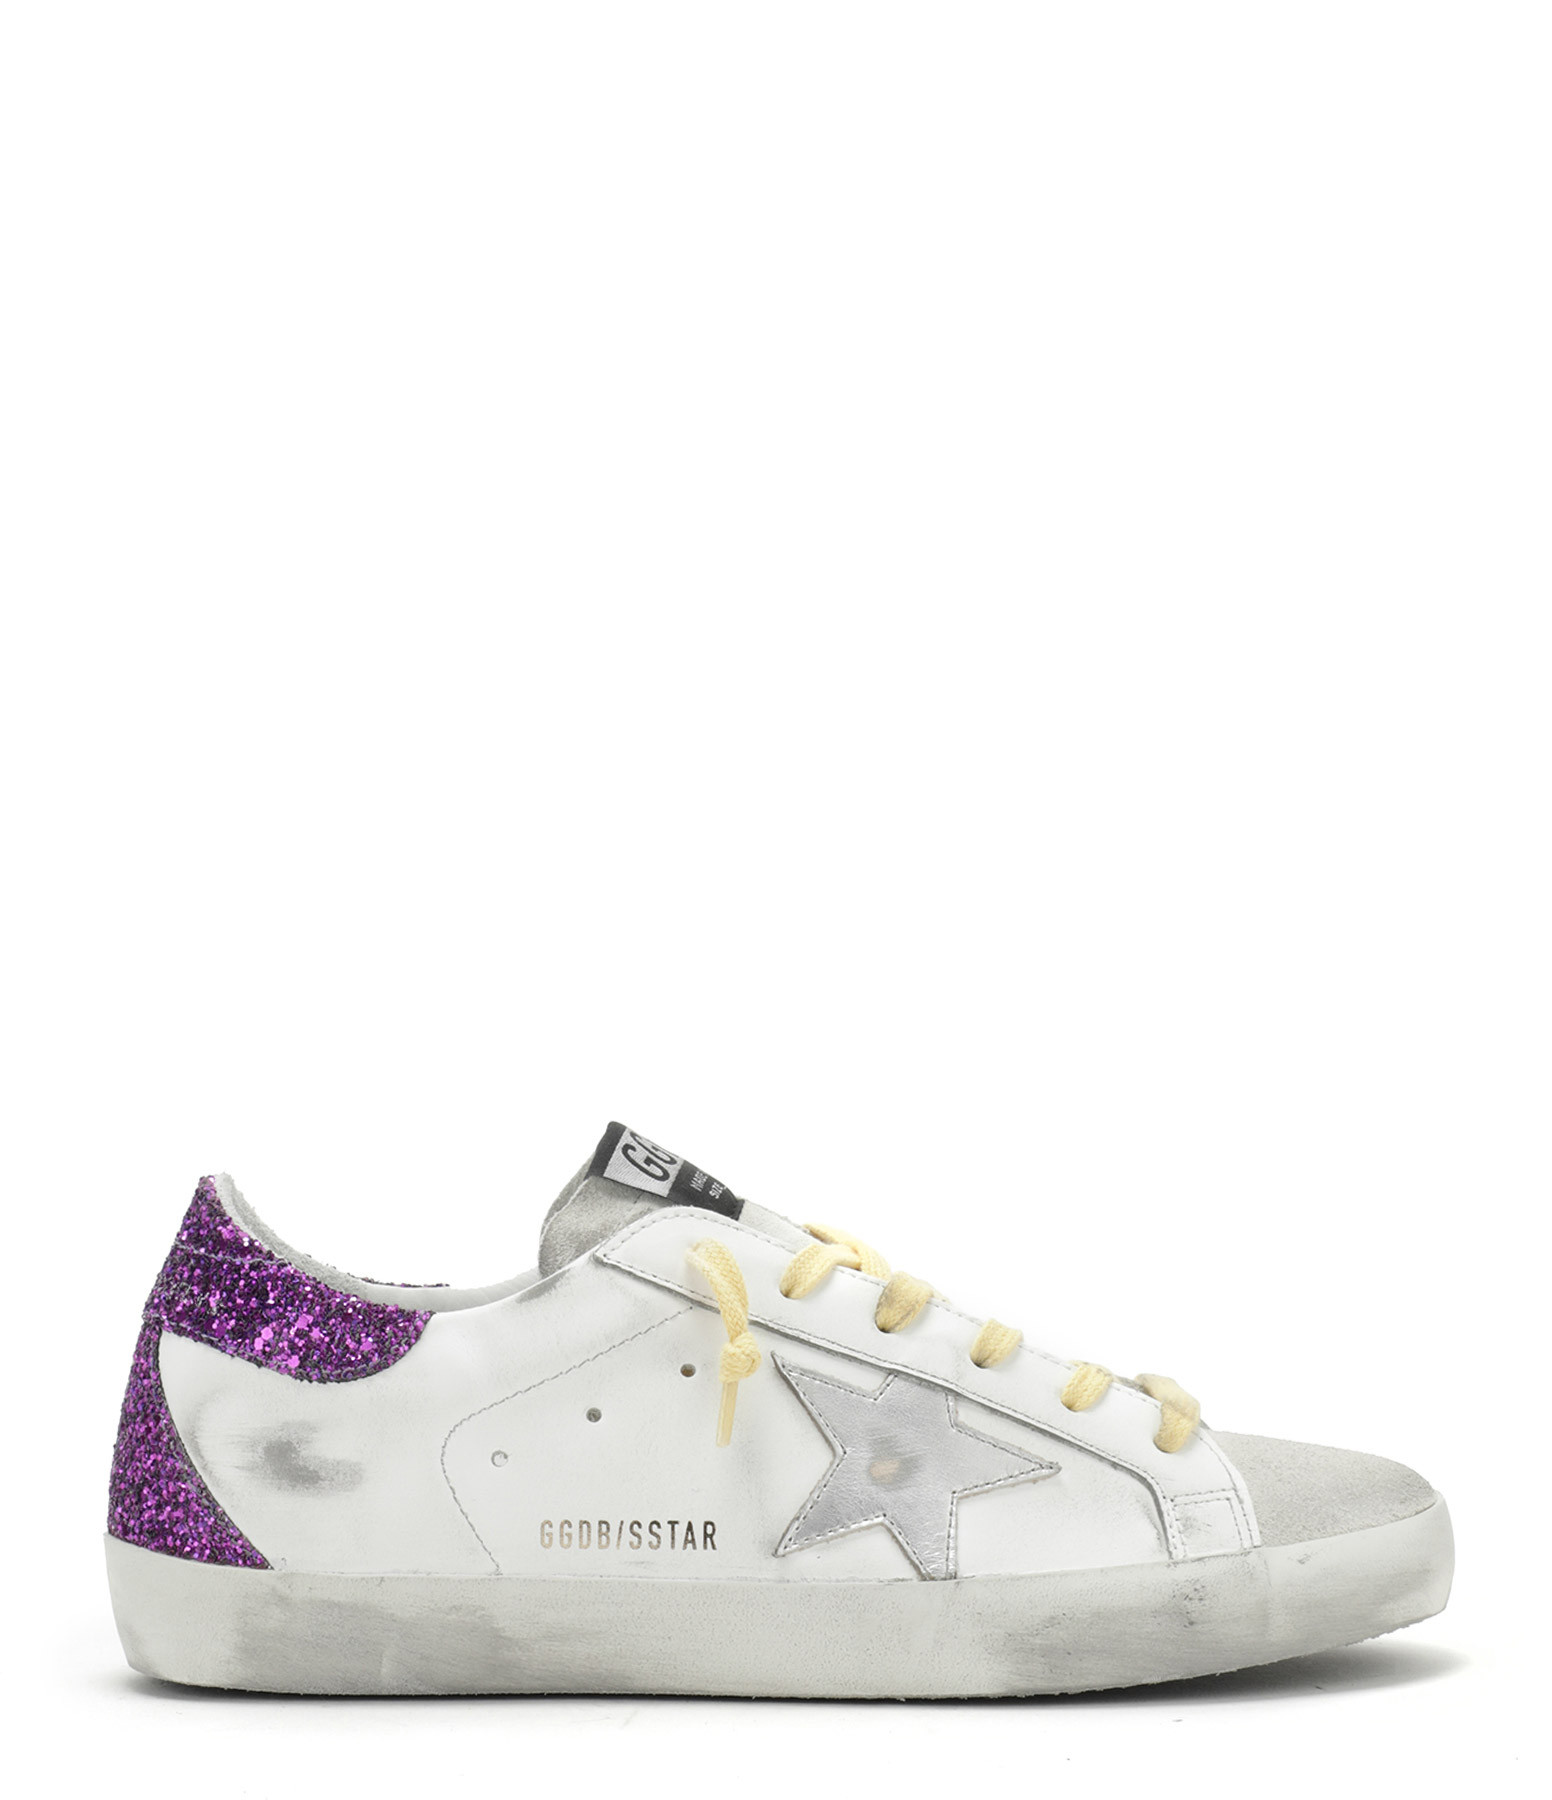 GOLDEN GOOSE - Baskets Superstar Cuir Glitter Violet Argenté